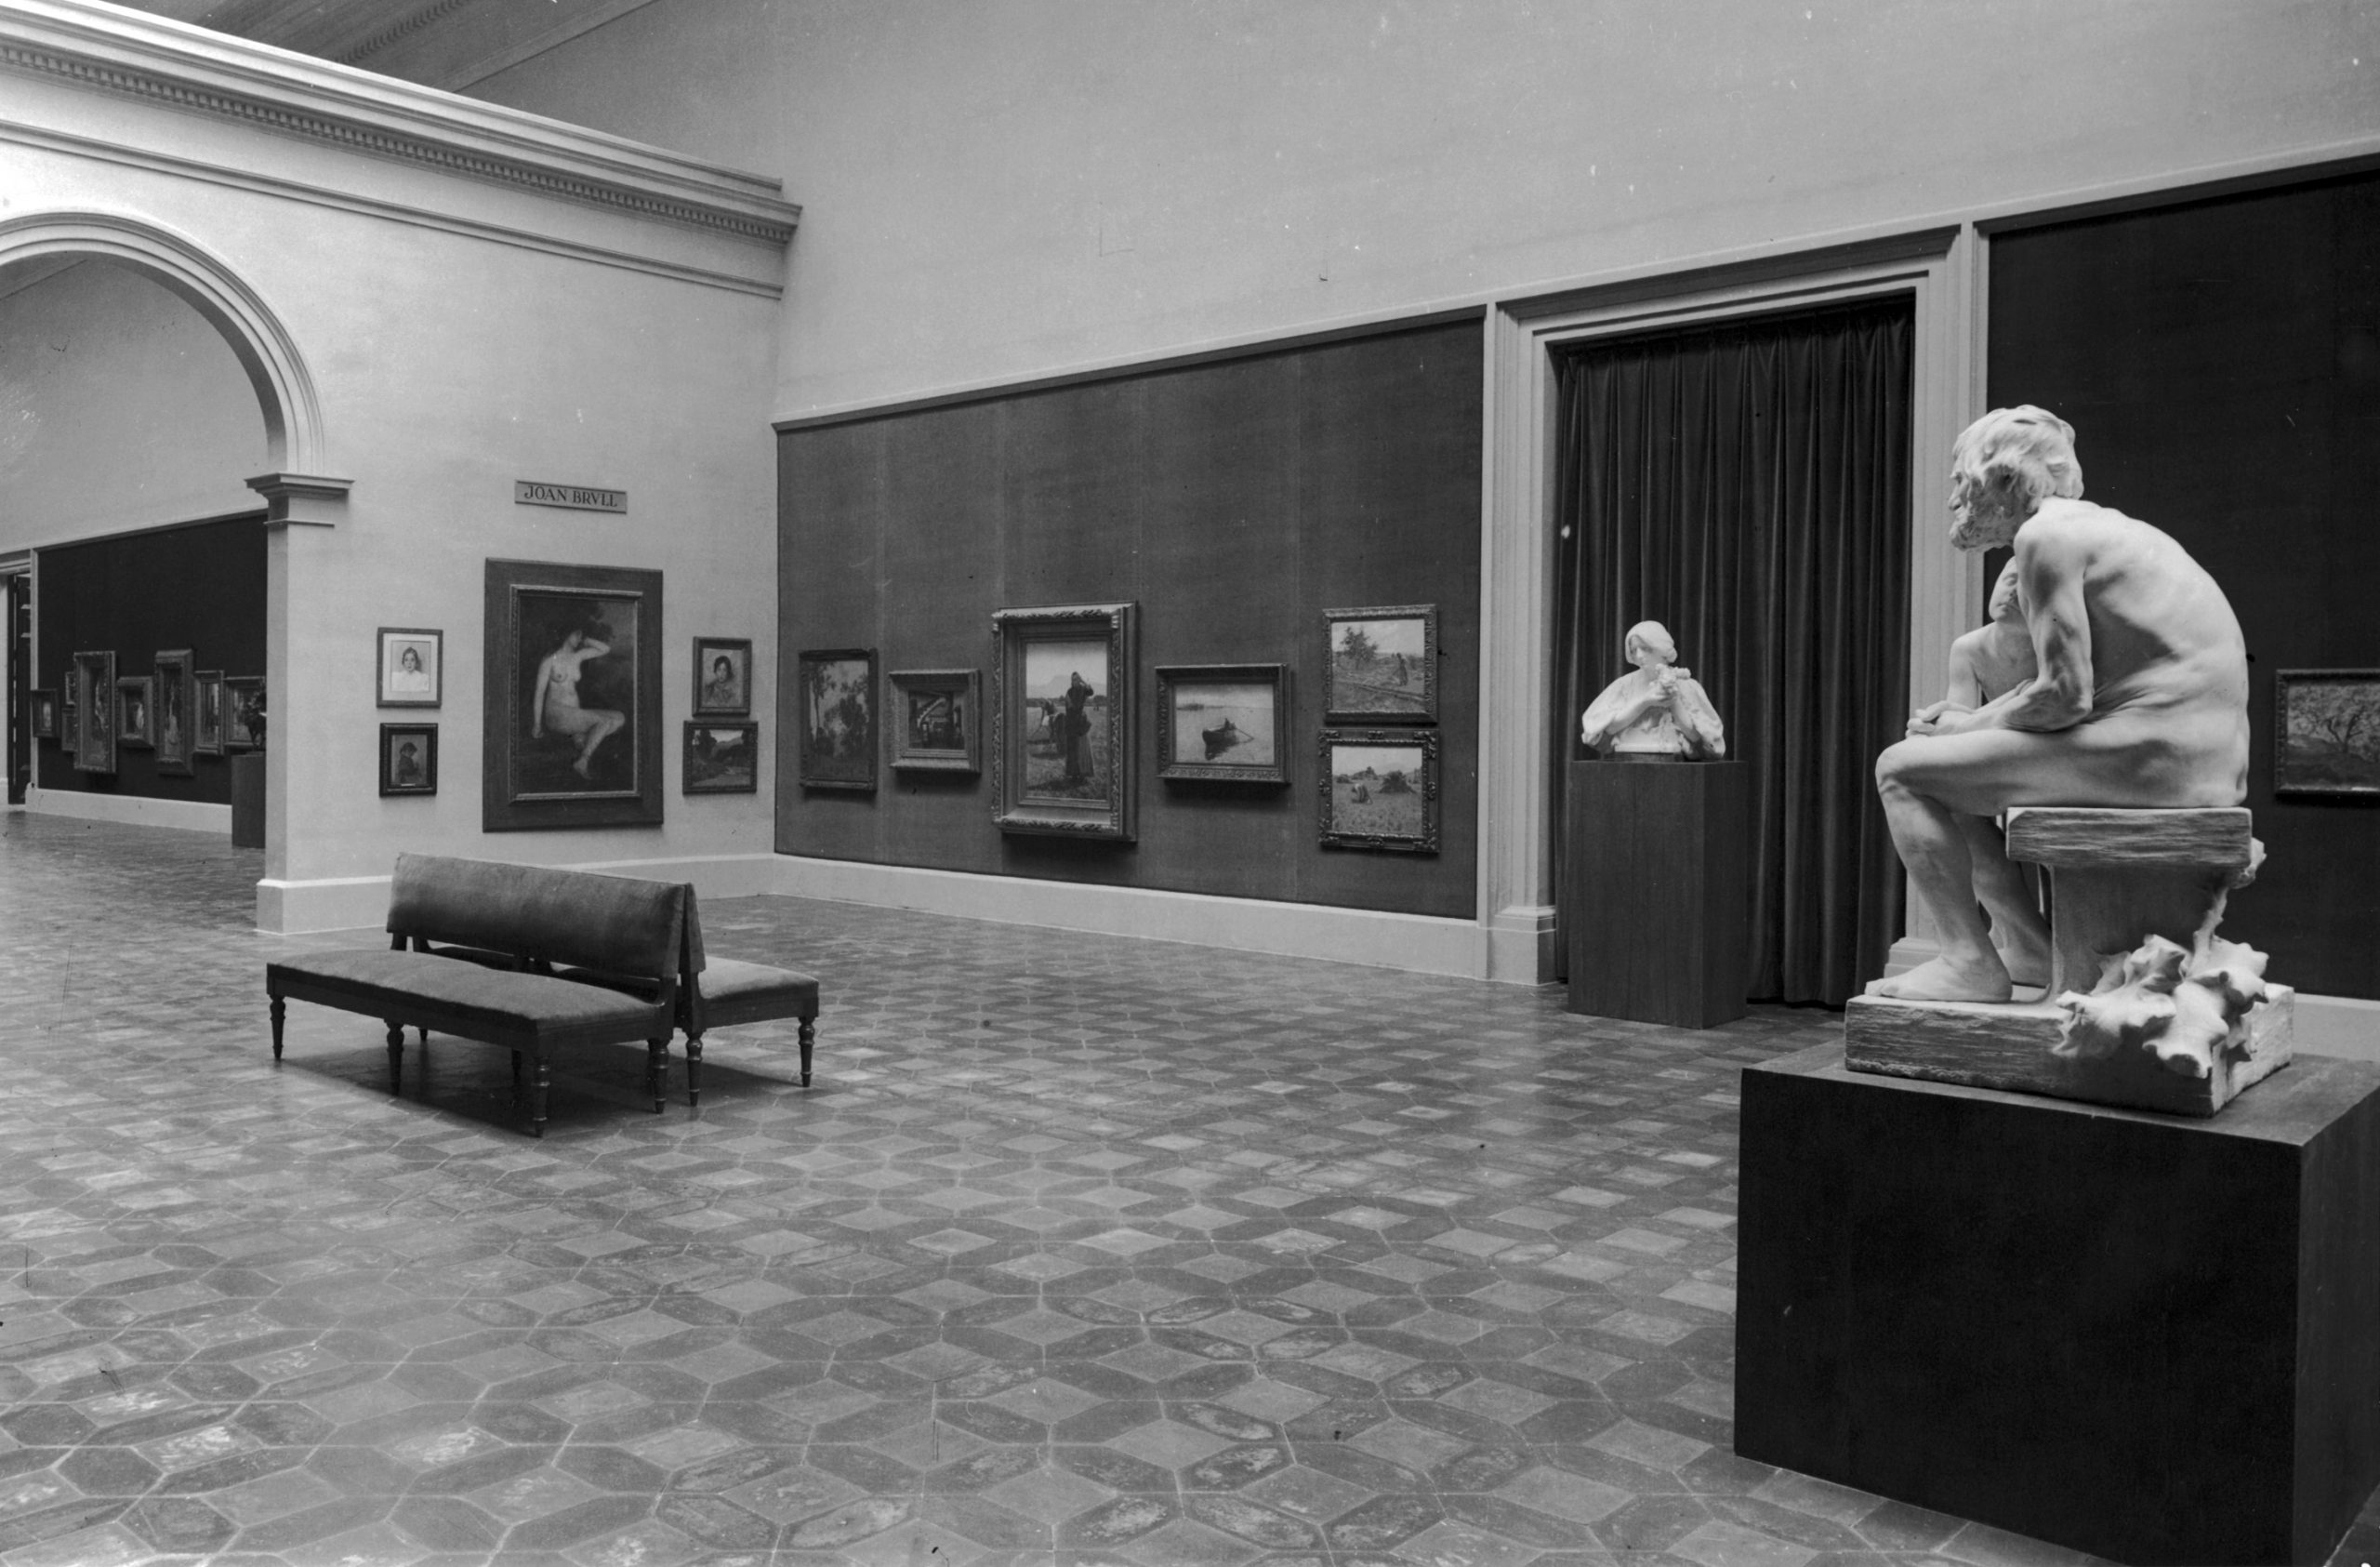 The new facilities of the Museu d'Art de Catalunya made it possible to display the collections in an orderly fashion, by 1934